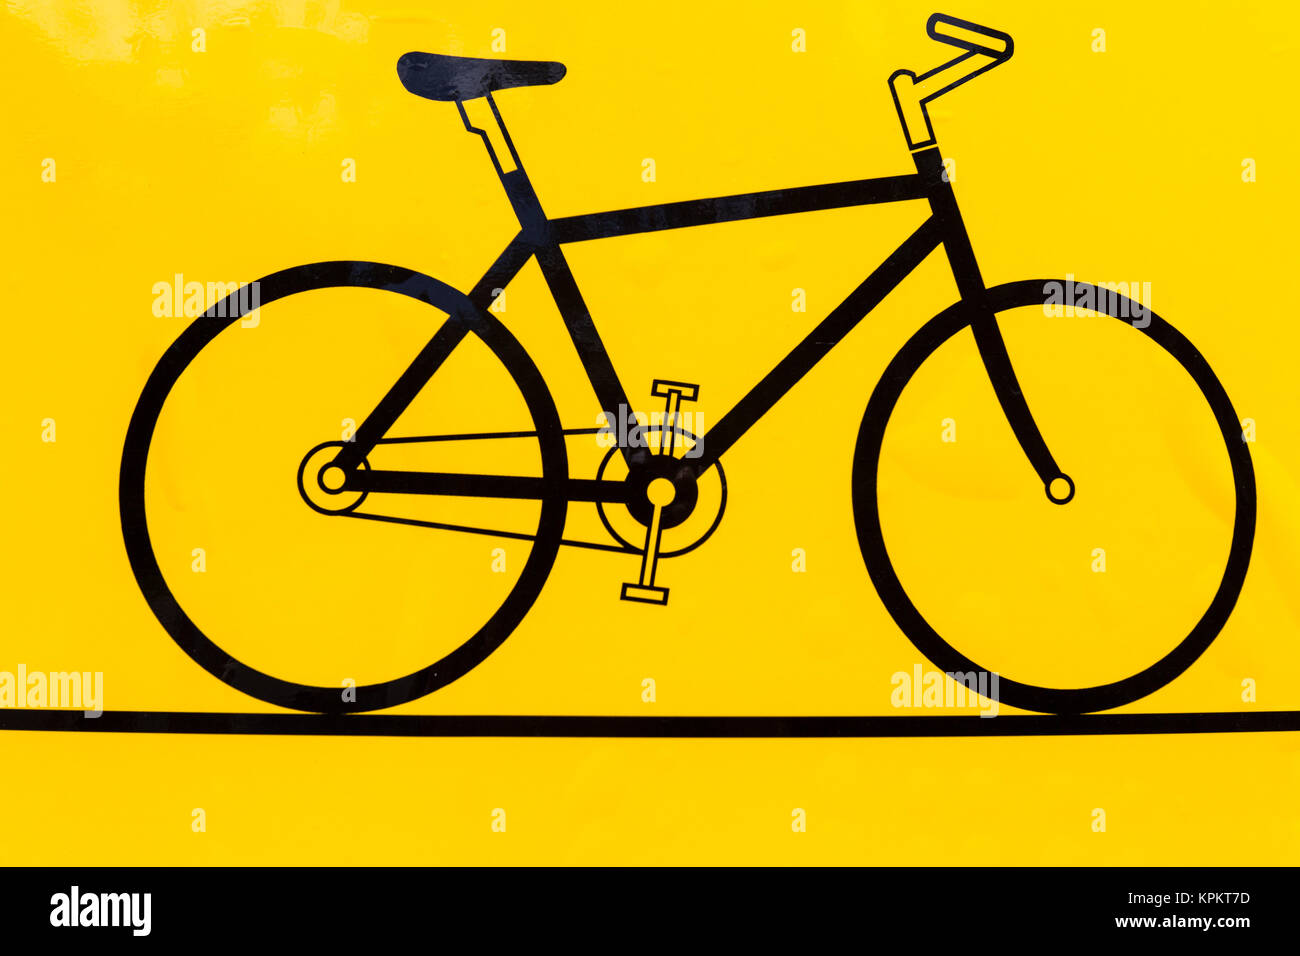 Bicycle outline icon, modern minimal flat design style, black bike on yellow background photo - Stock Image